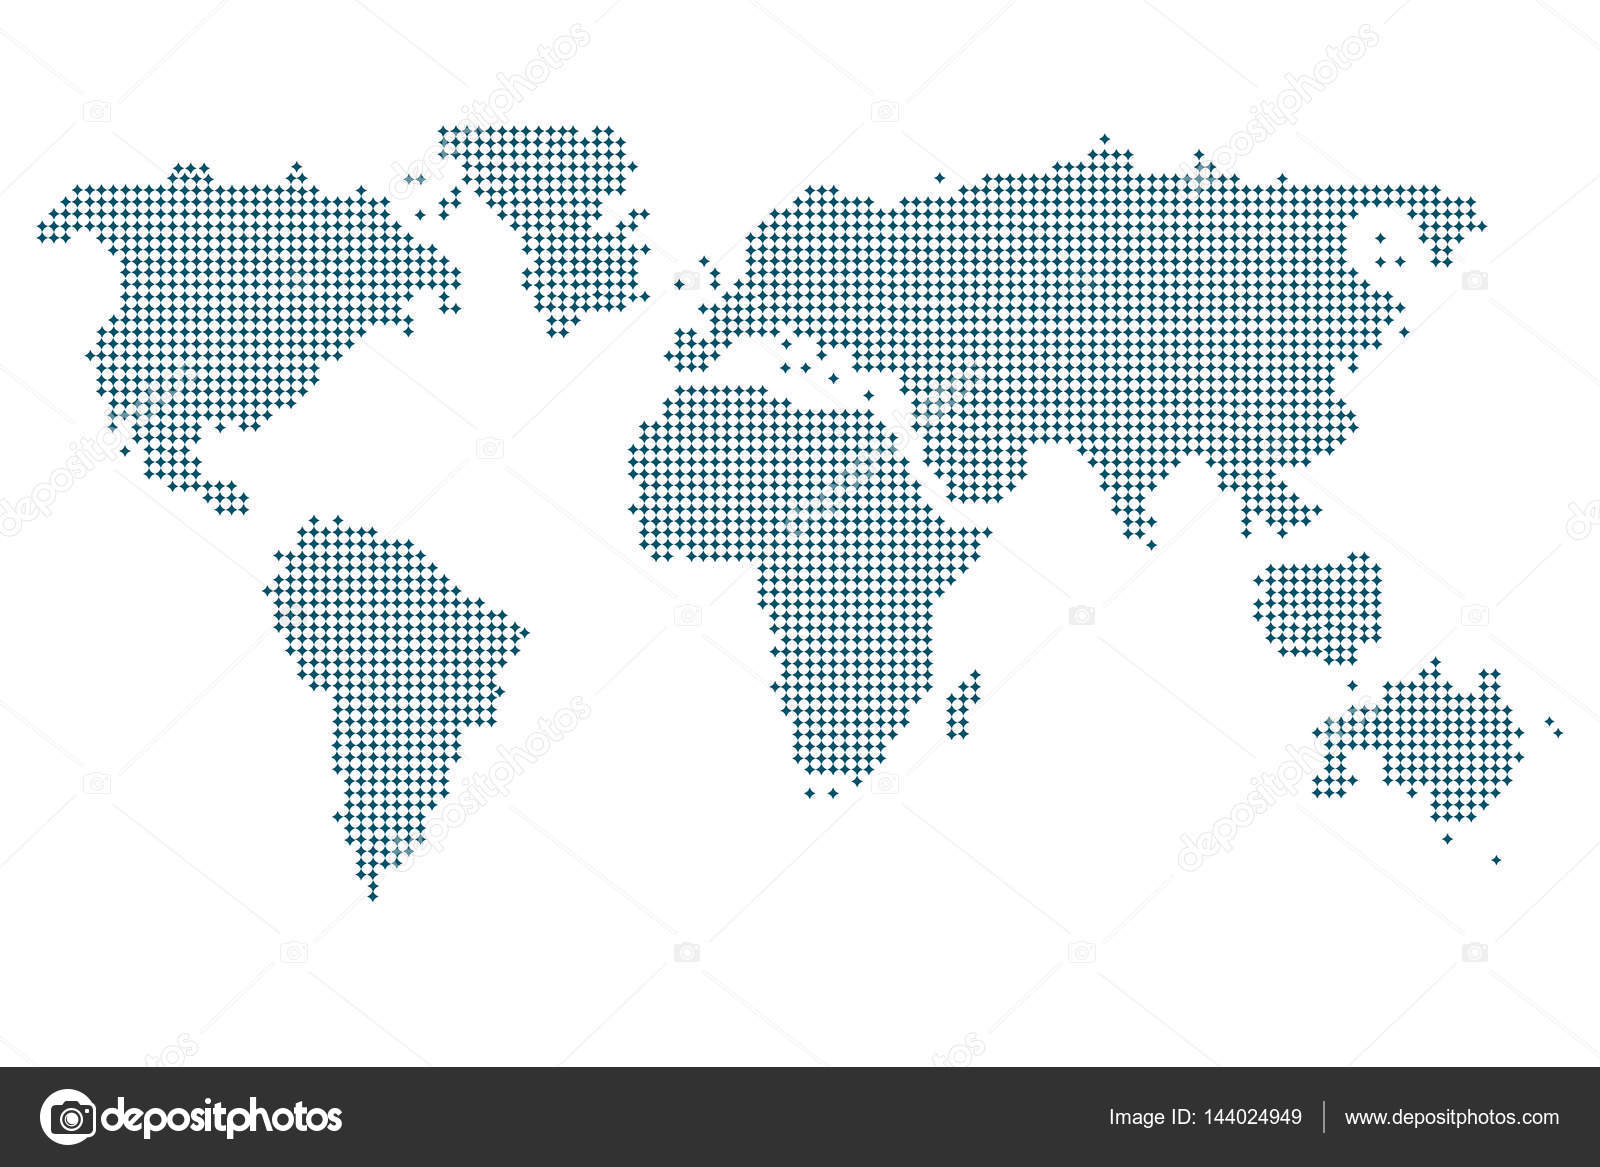 Dotted world map world map blue world map vector world map flat dotted world map world map blue world map vector world map flat world map template world map illustration world map businnes world map infographic gumiabroncs Images